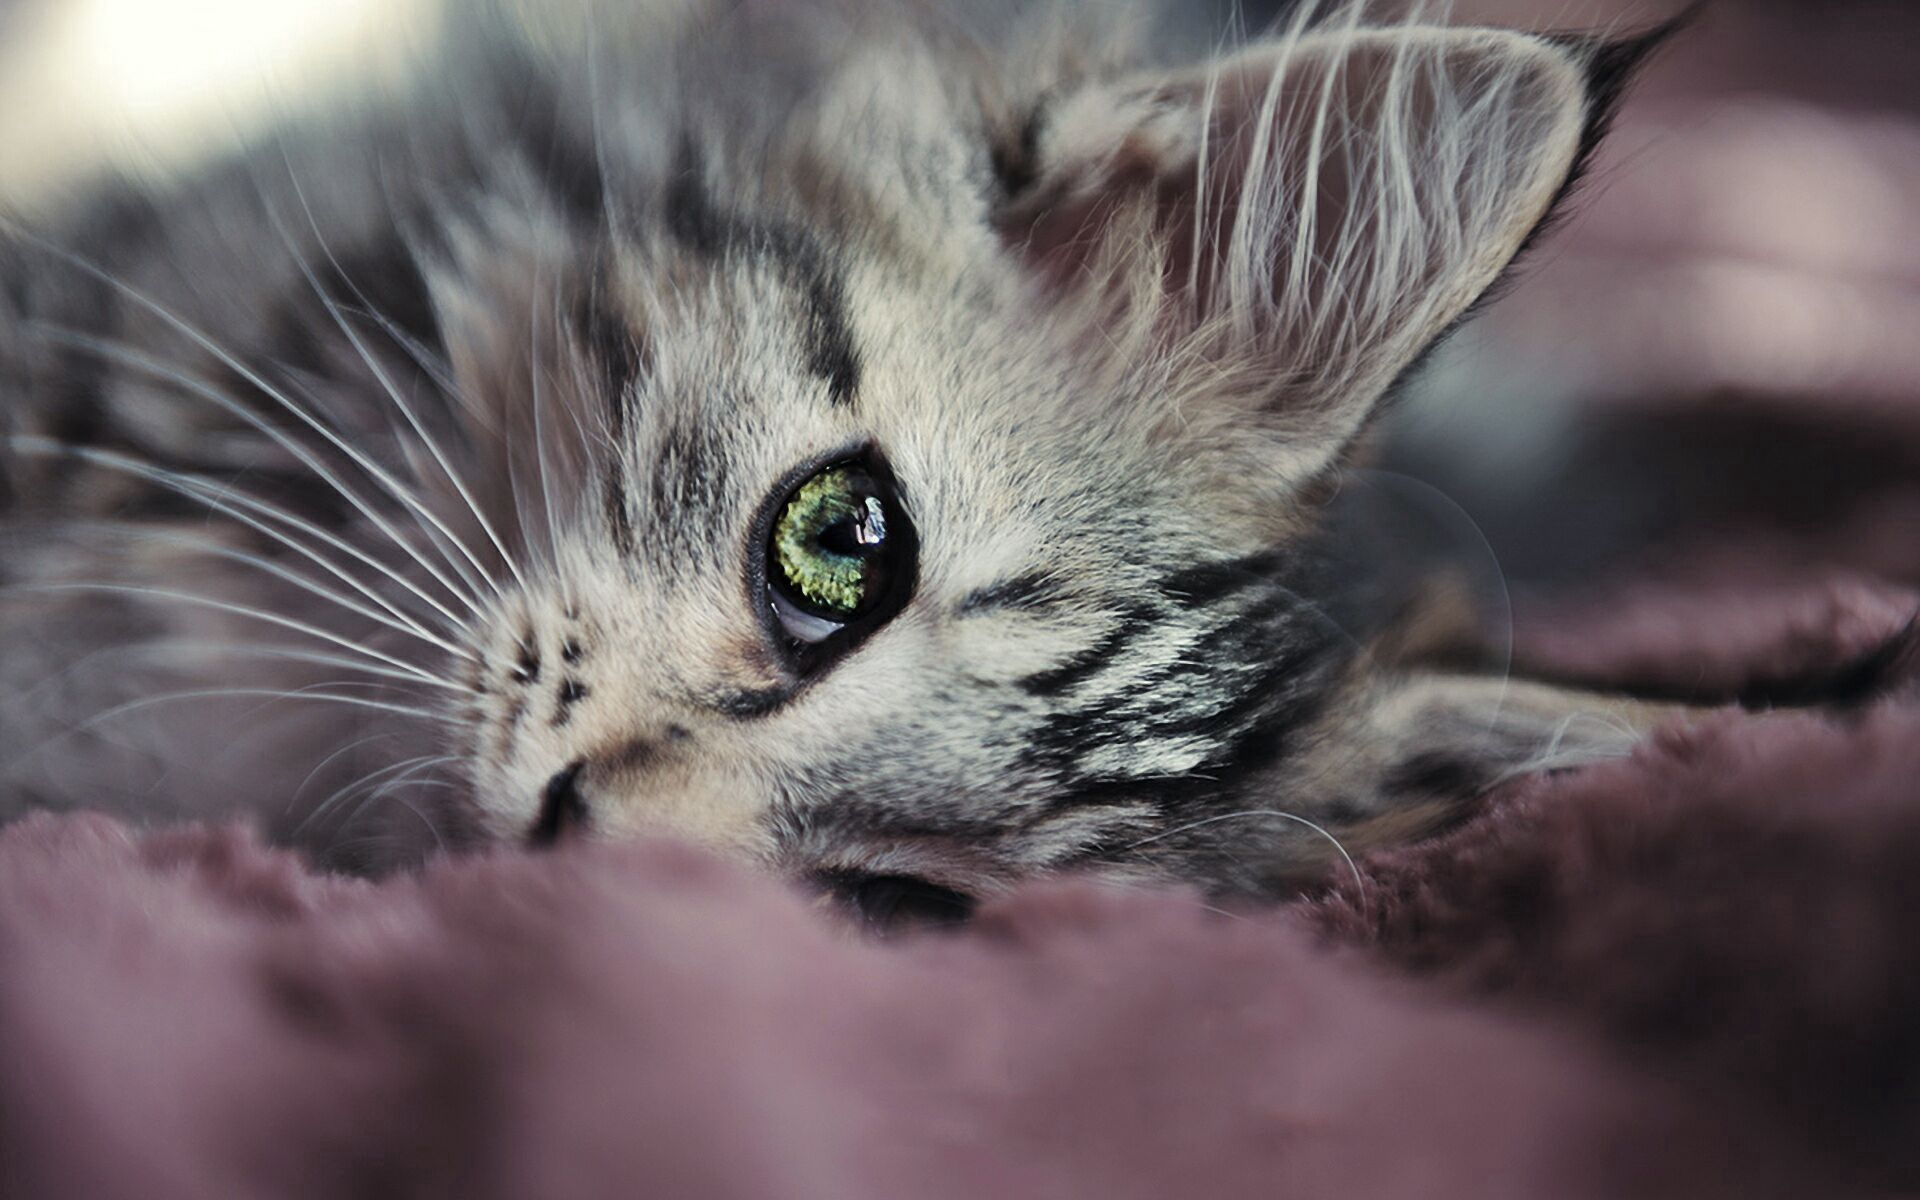 52679 download wallpaper Animals, Kitty, Kitten, Muzzle, Eyes, Nice, Sweetheart, Sight, Opinion screensavers and pictures for free